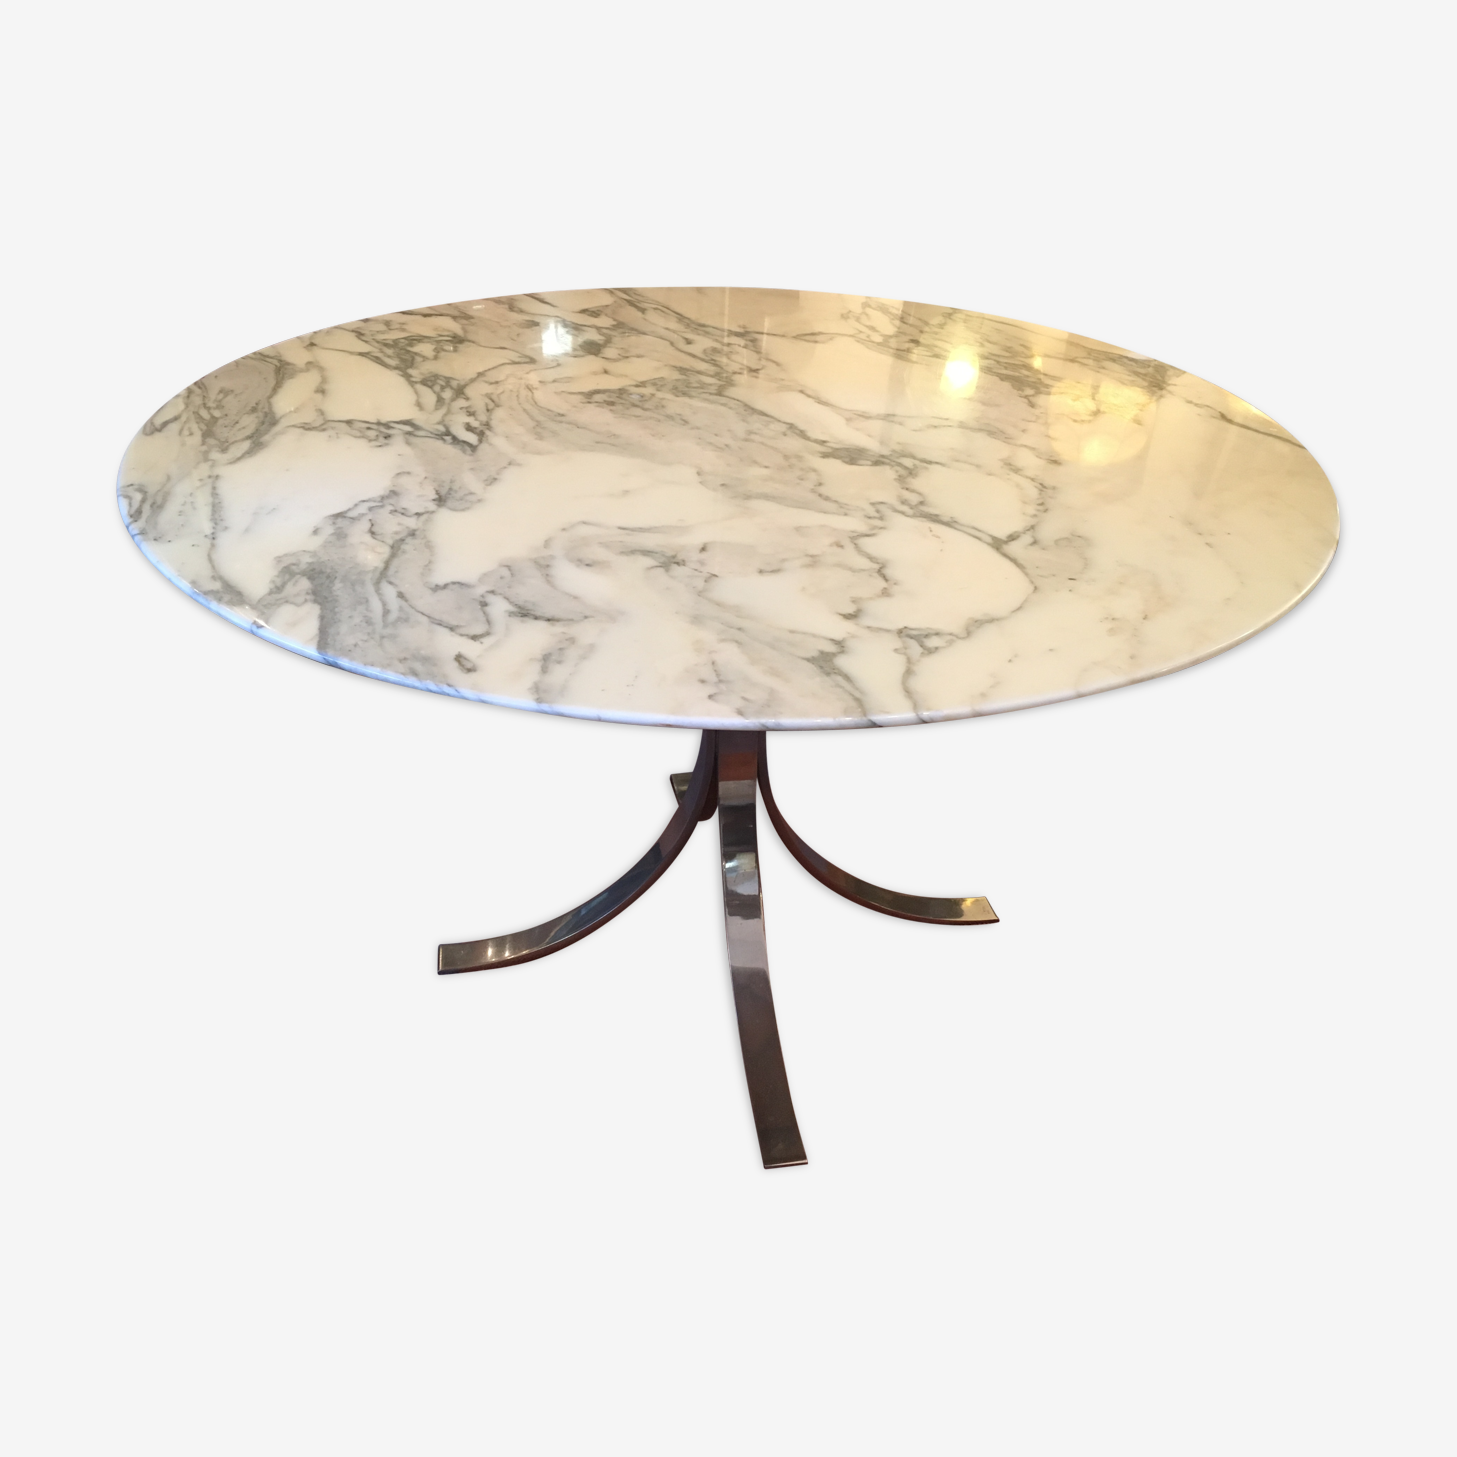 Marble table and stainless steel base